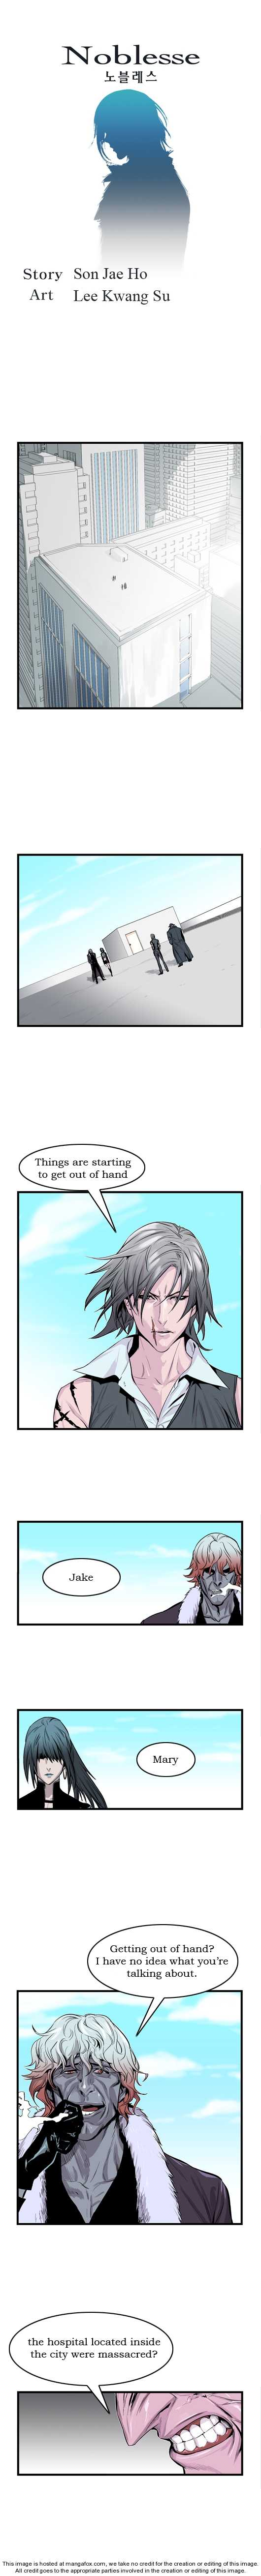 Noblesse 41 Page 1